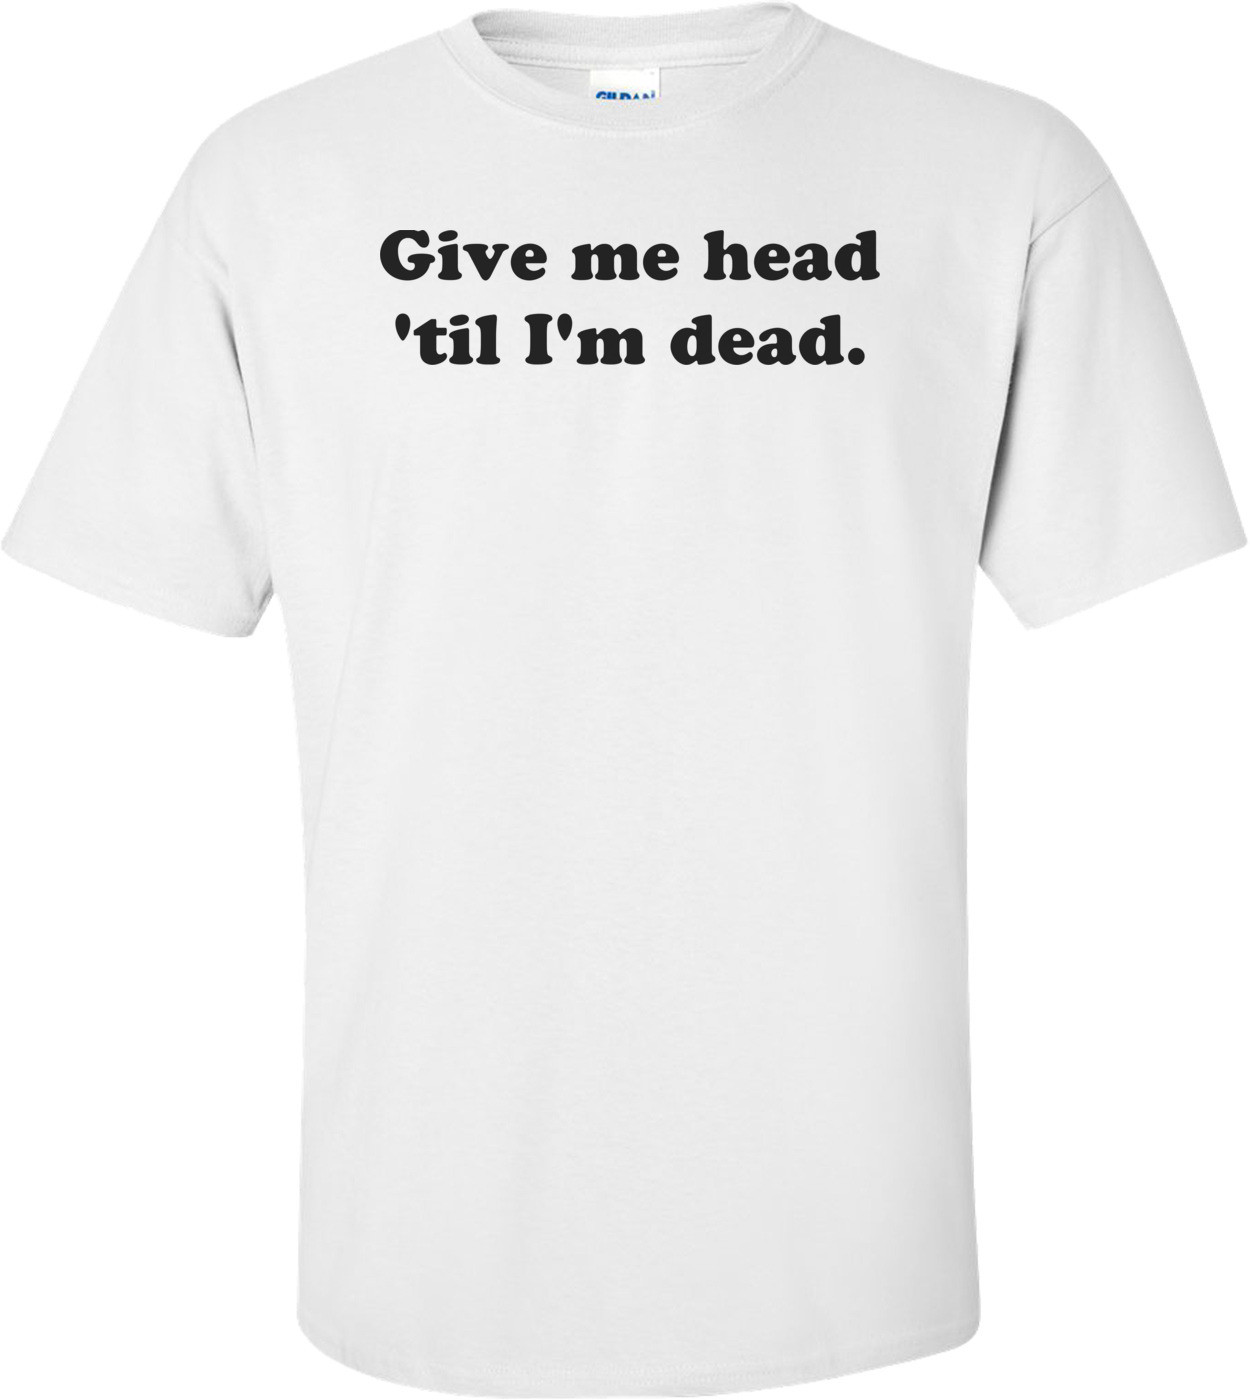 Give me head 'til I'm dead. Shirt